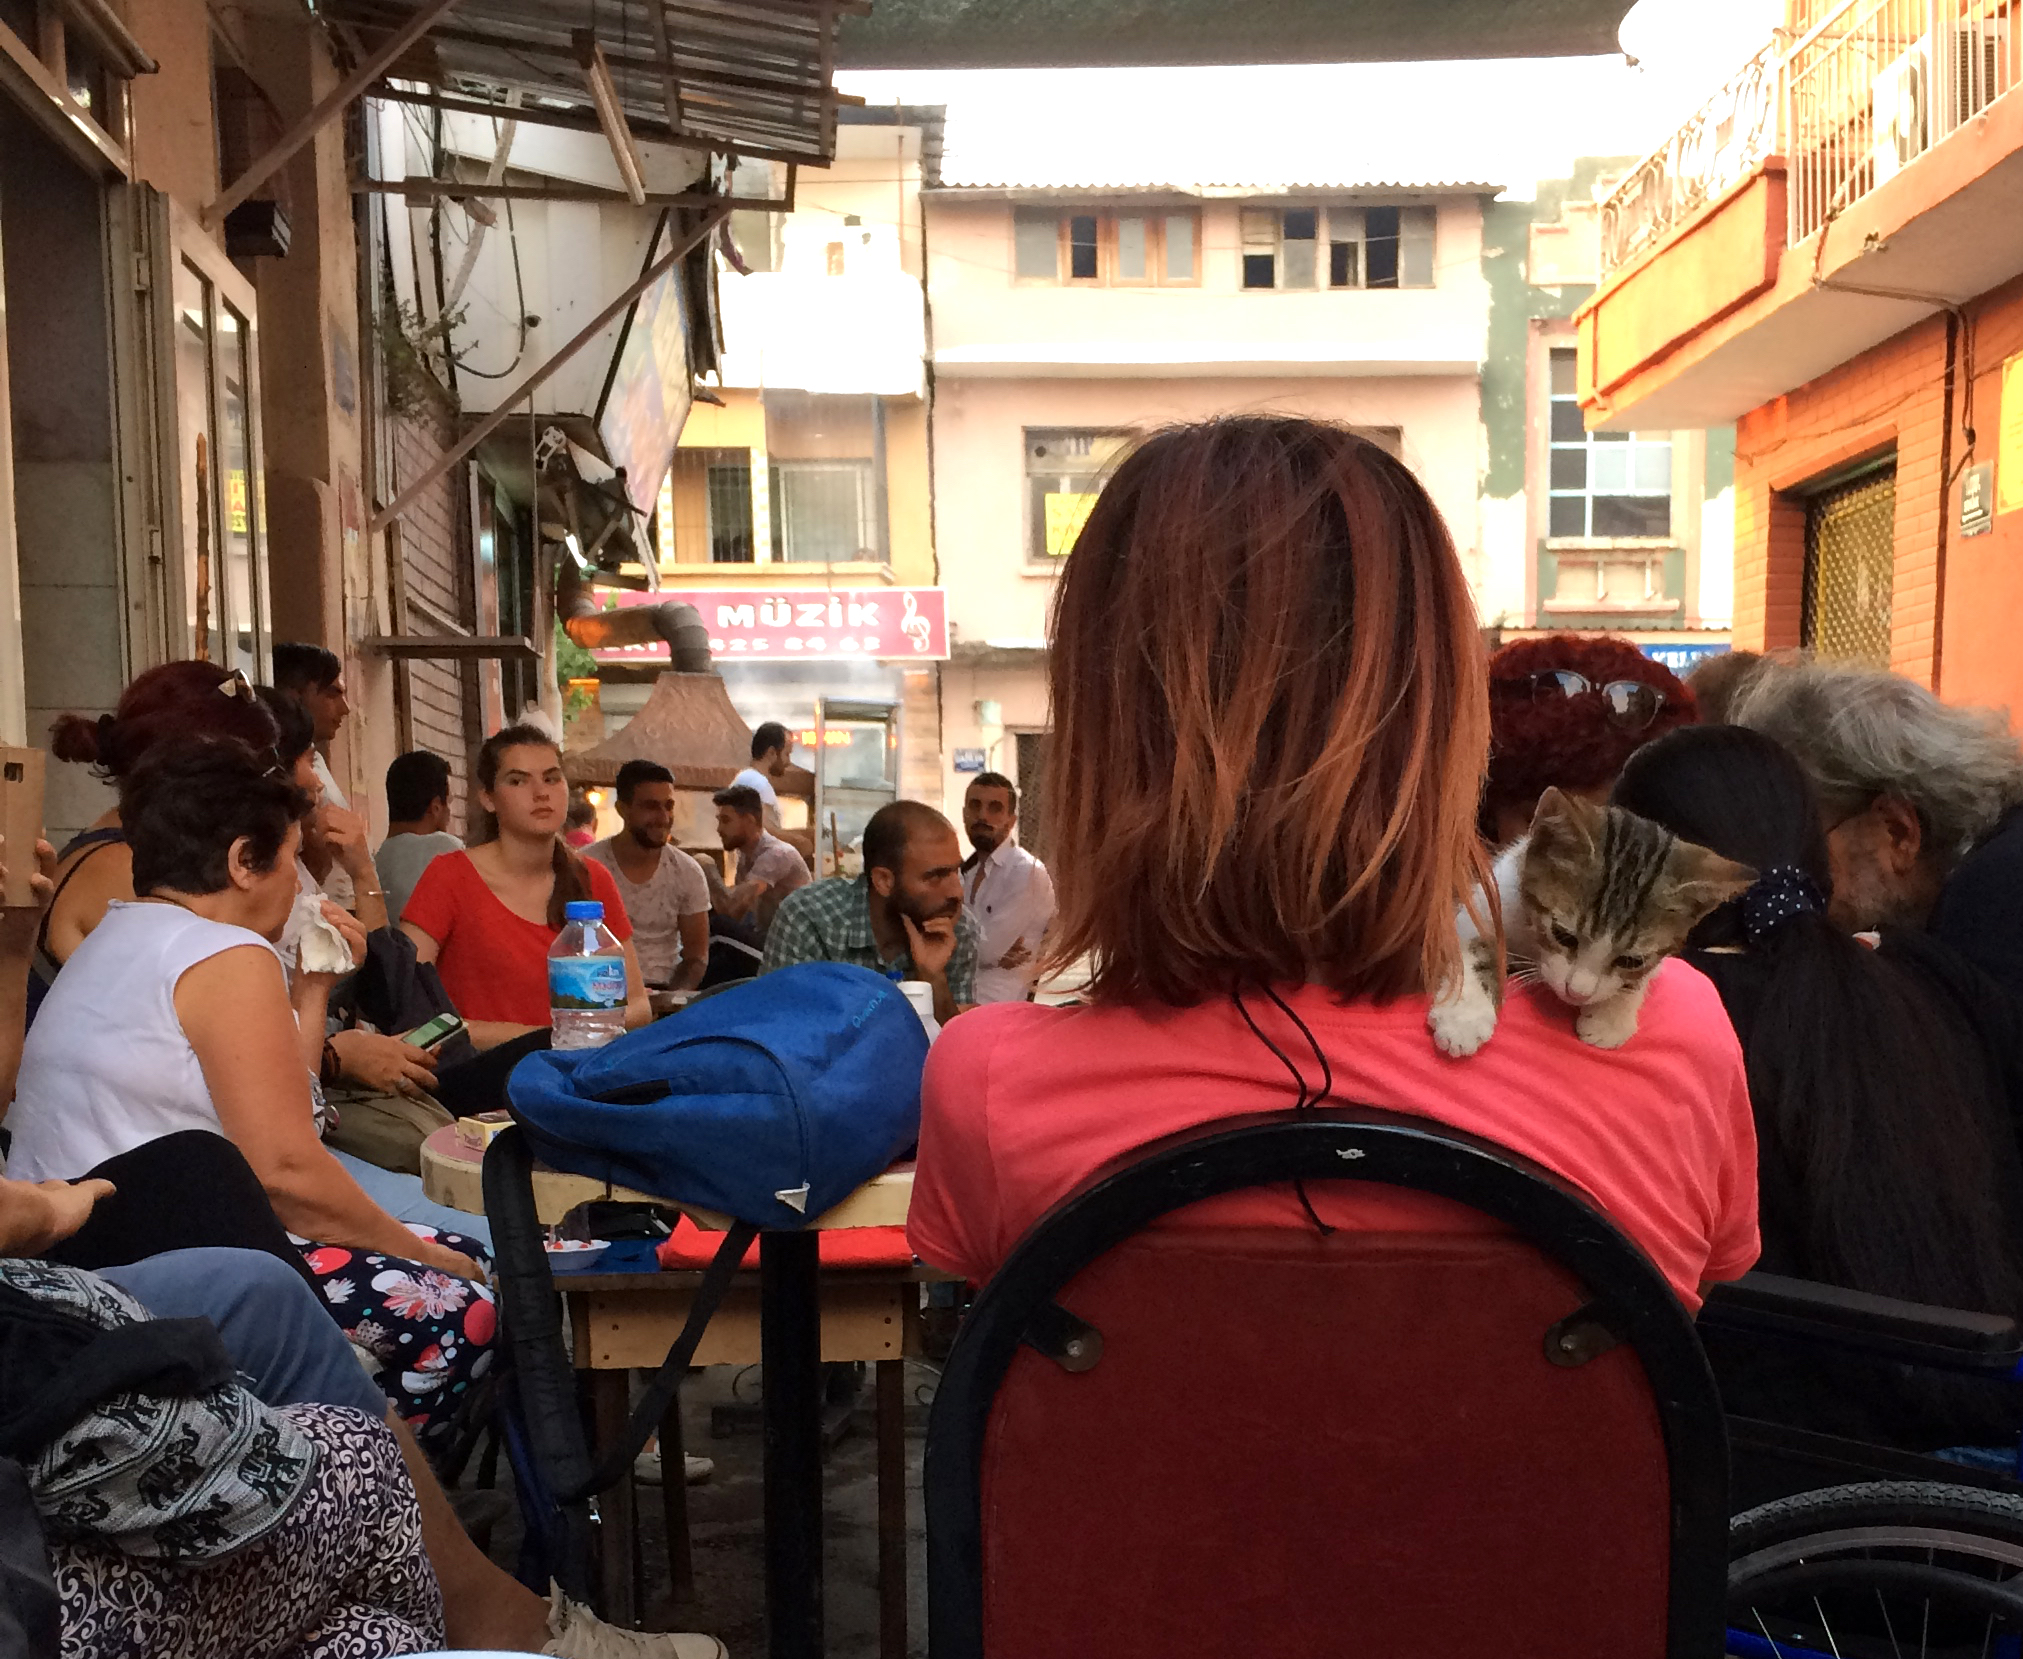 A meeting of local civil society organizations in the Basmane neighborhood outside of Kapilar is well attended by resident Turks as well as Syrians.